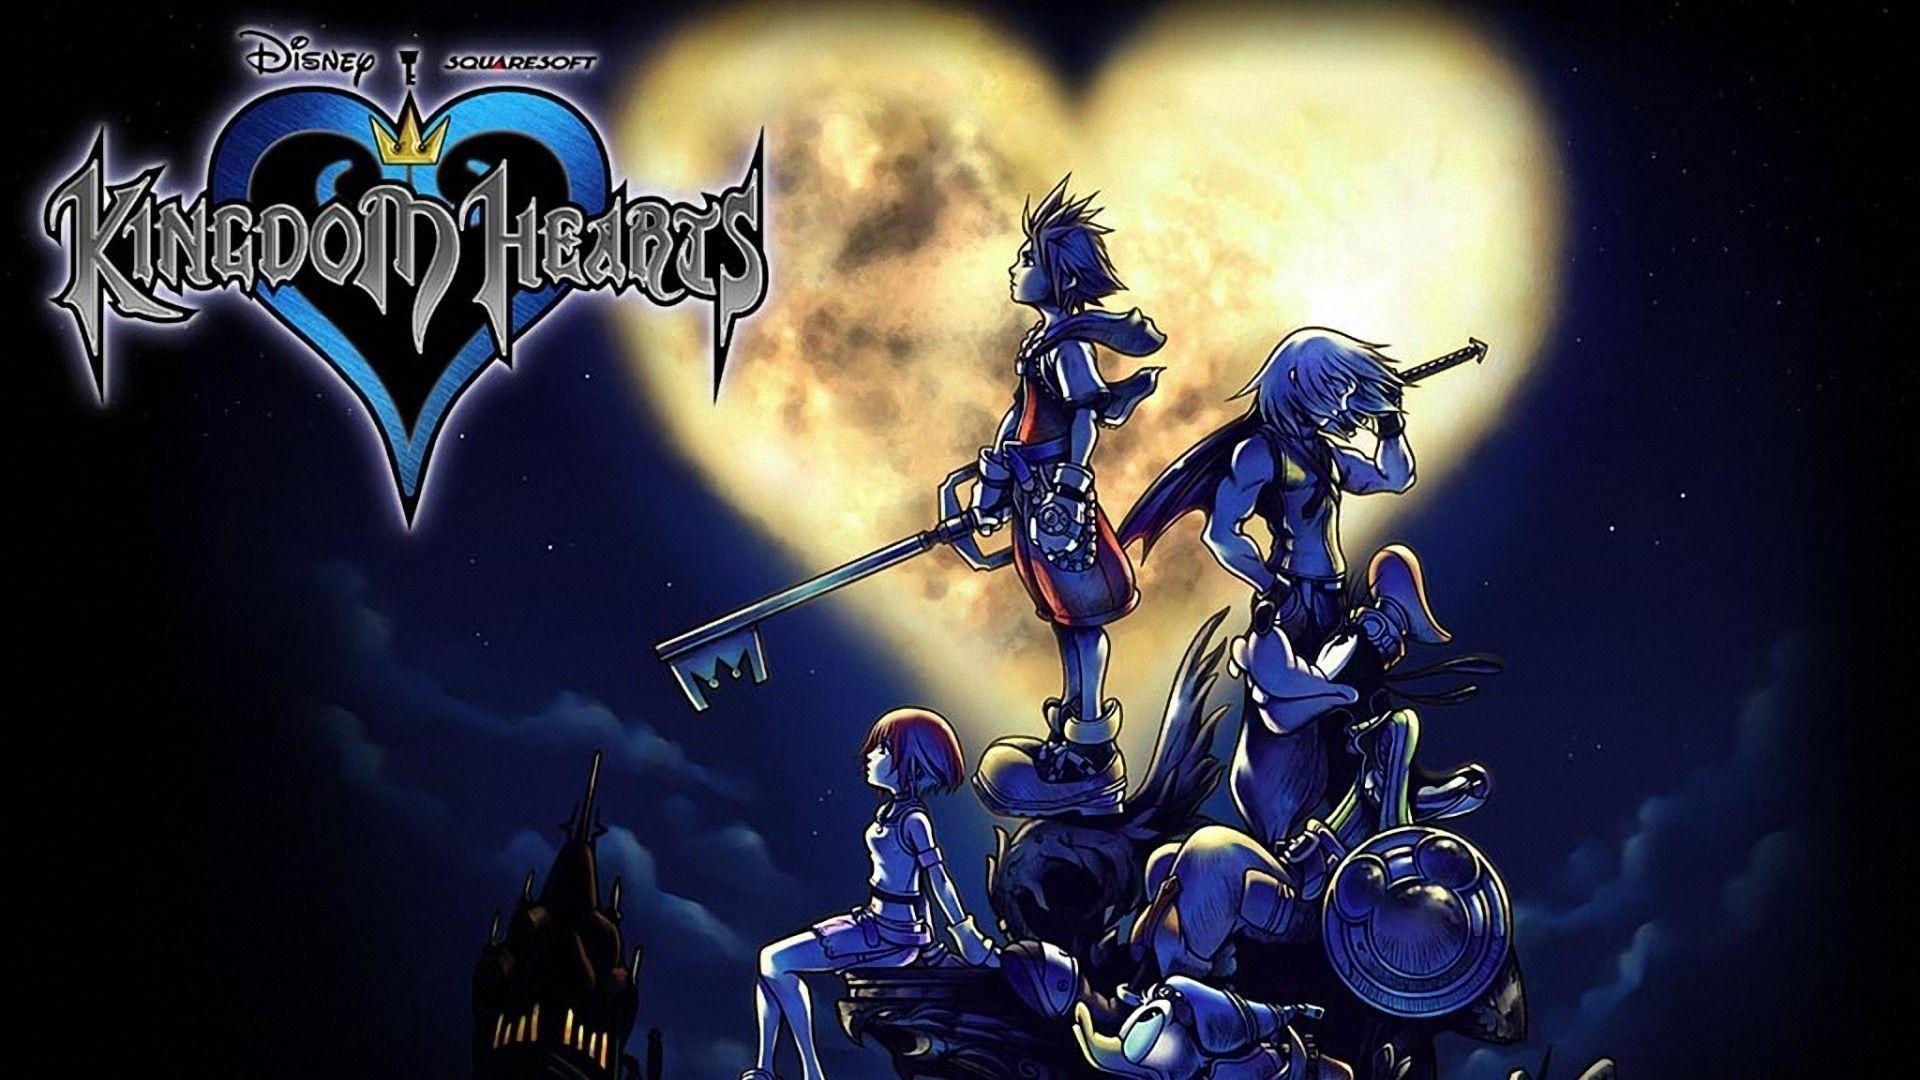 Wallpapers For > Kingdom Hearts Hd Wallpapers